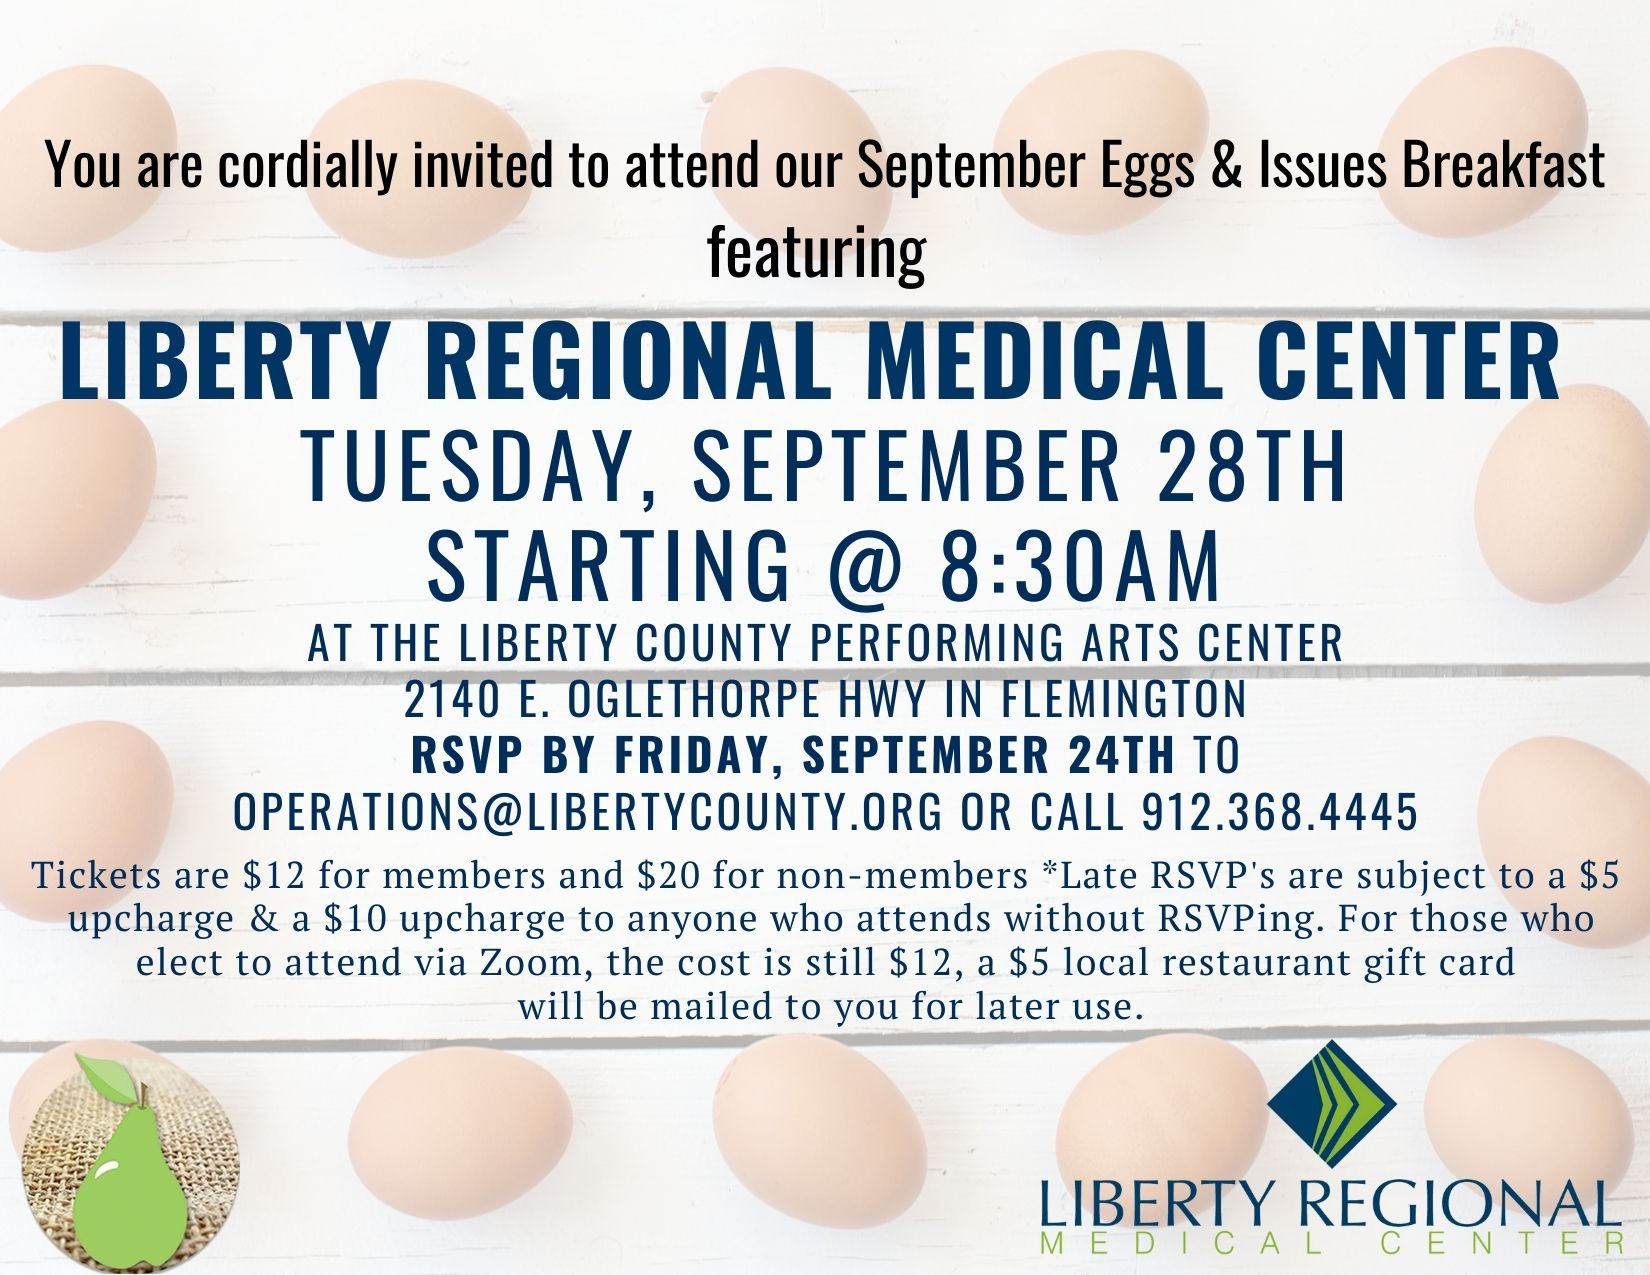 Eggs and Issues invitation for Liberty Regional Medical Center.